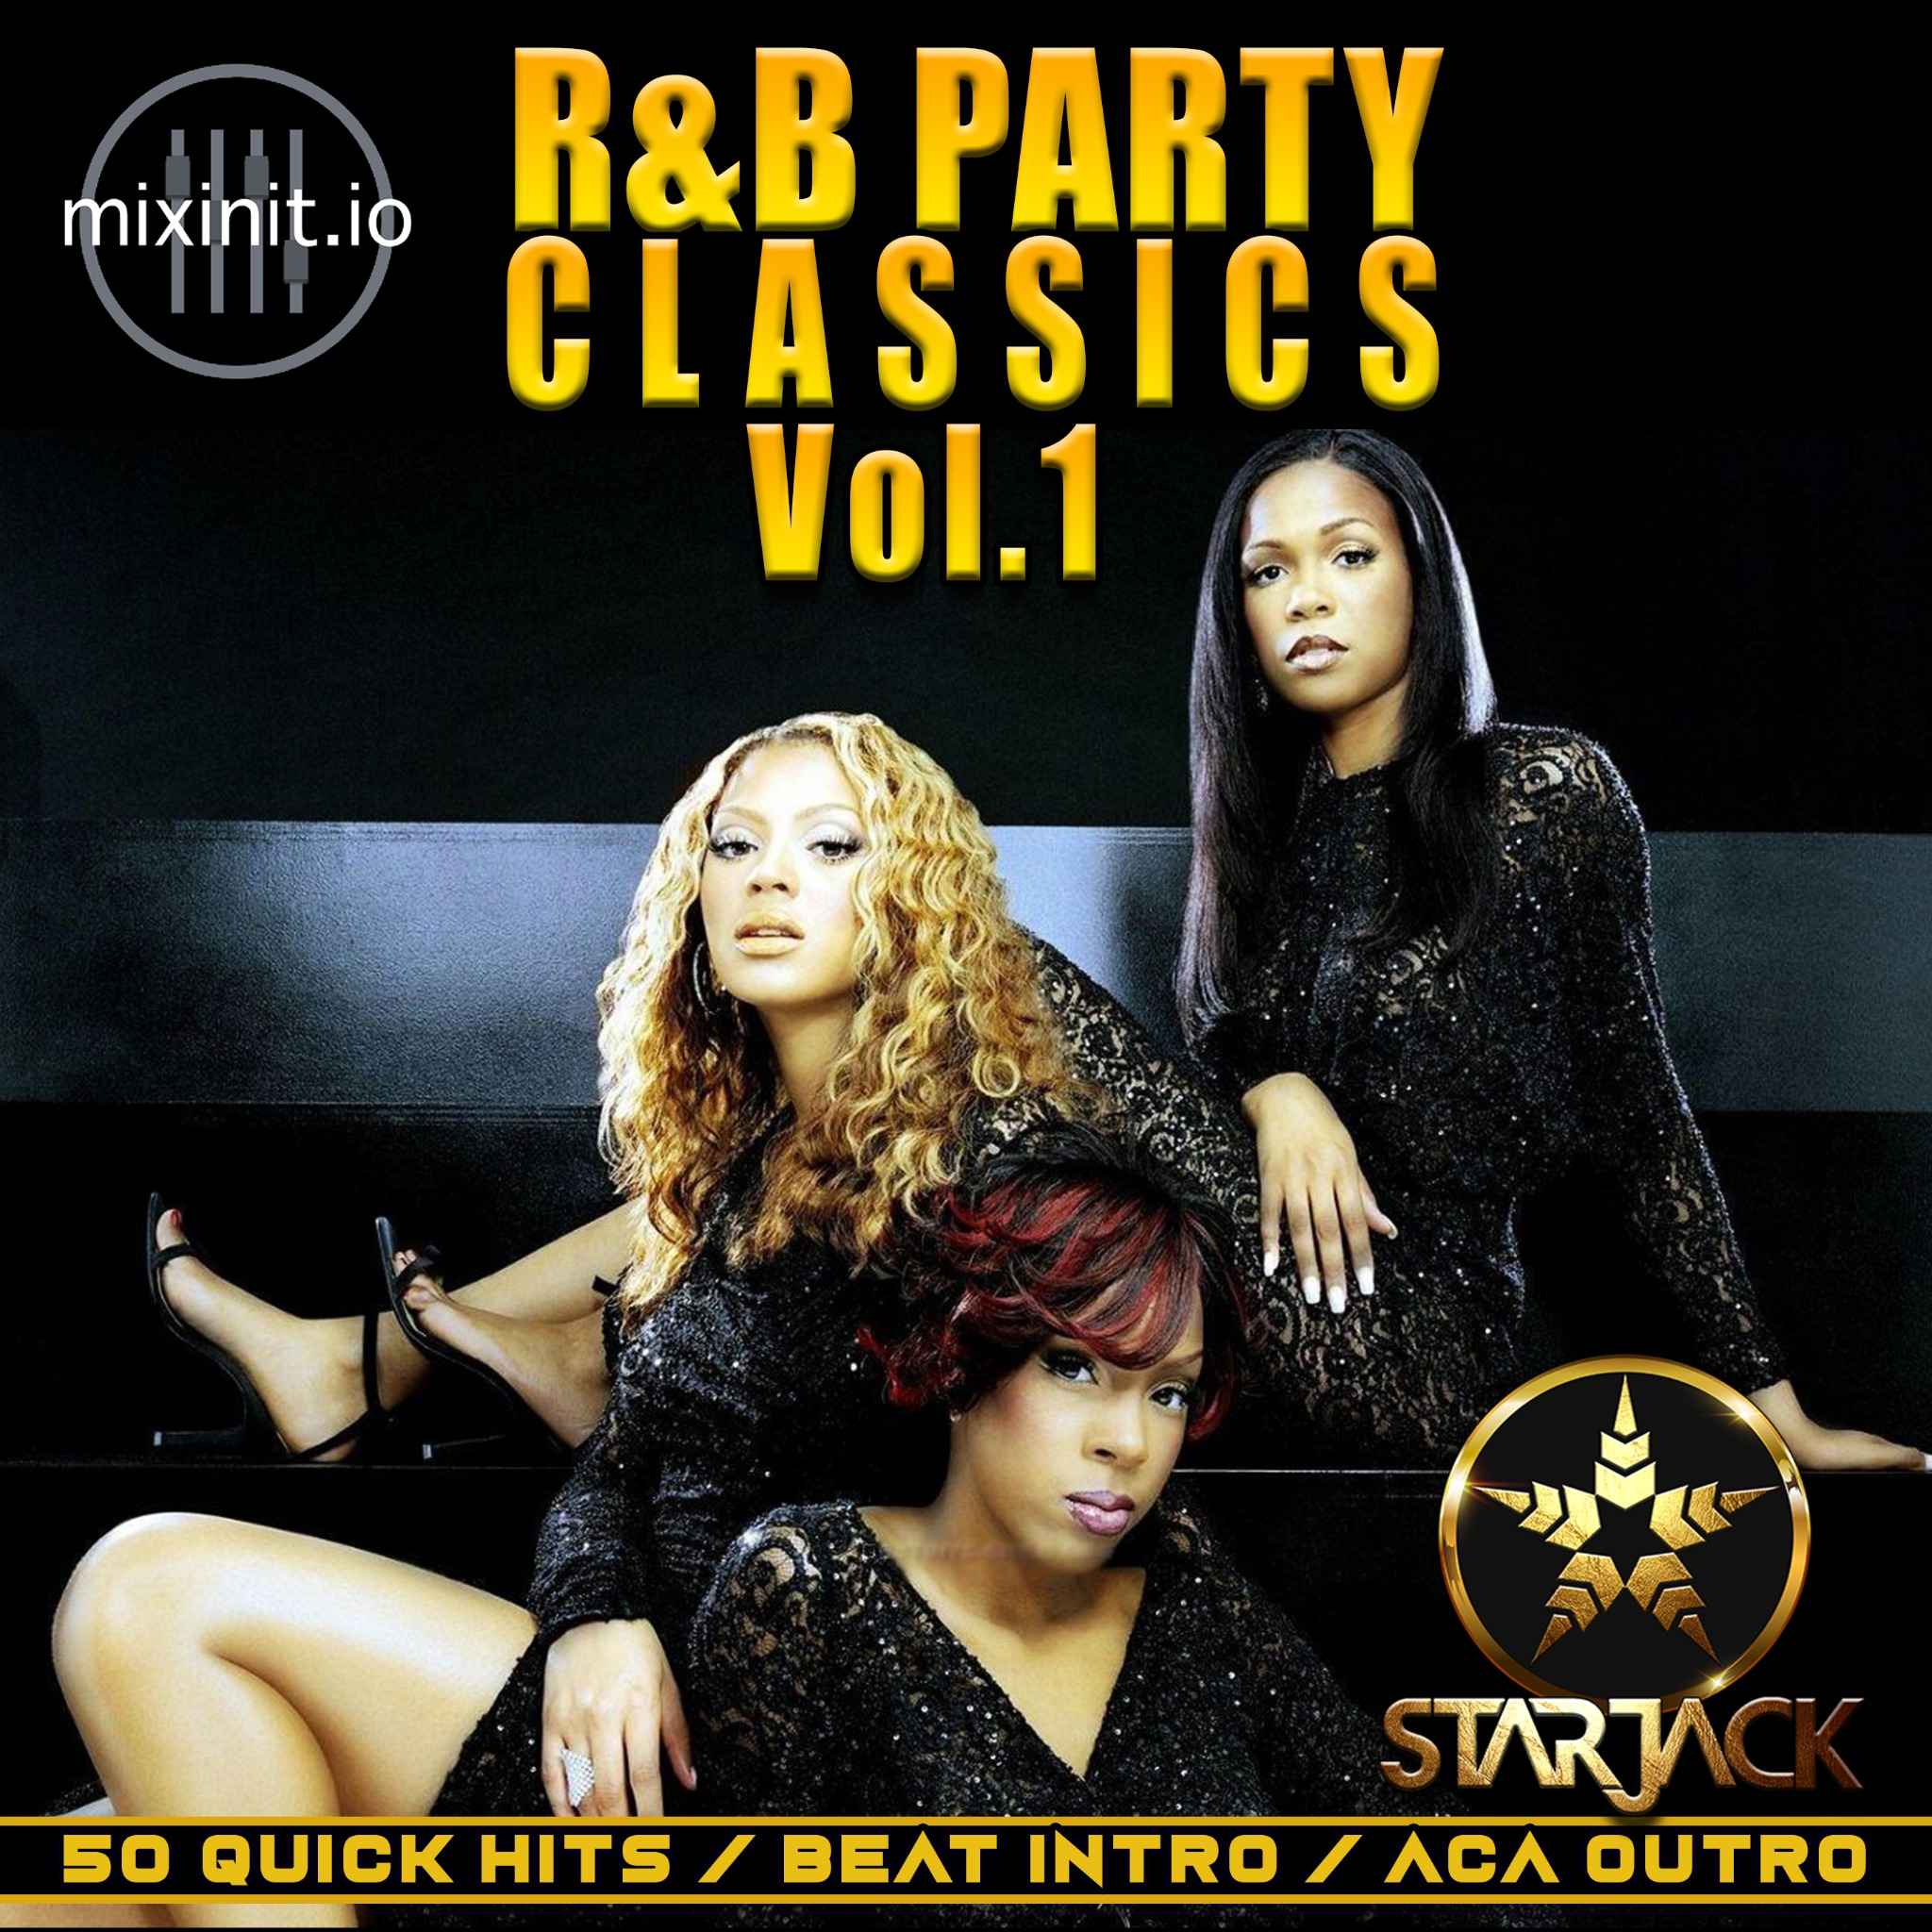 Starjack - R&B Party Classics Vol.1 (Acap Out Quick Hits)